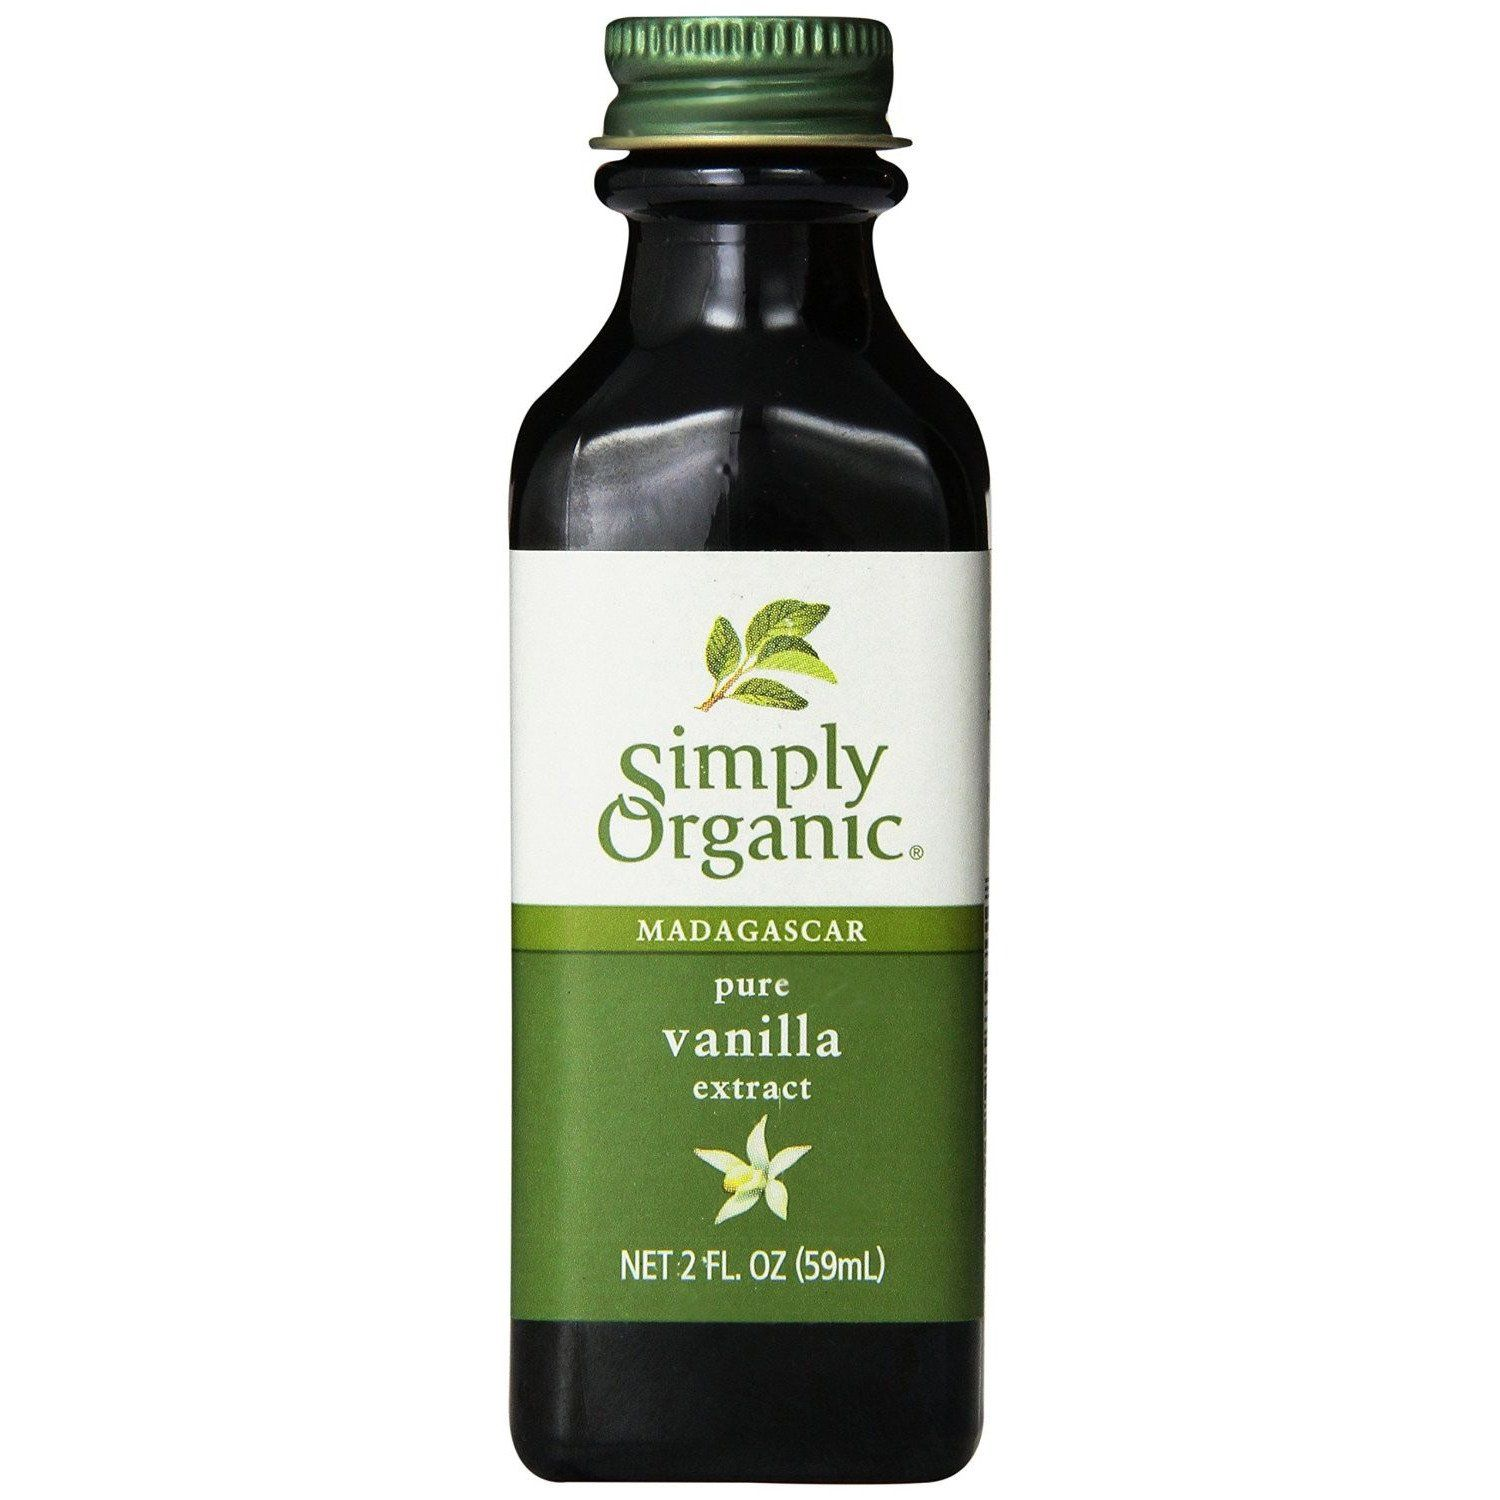 Food & Drink - Simply Organic Madagascar Vanilla Extract - 59ml